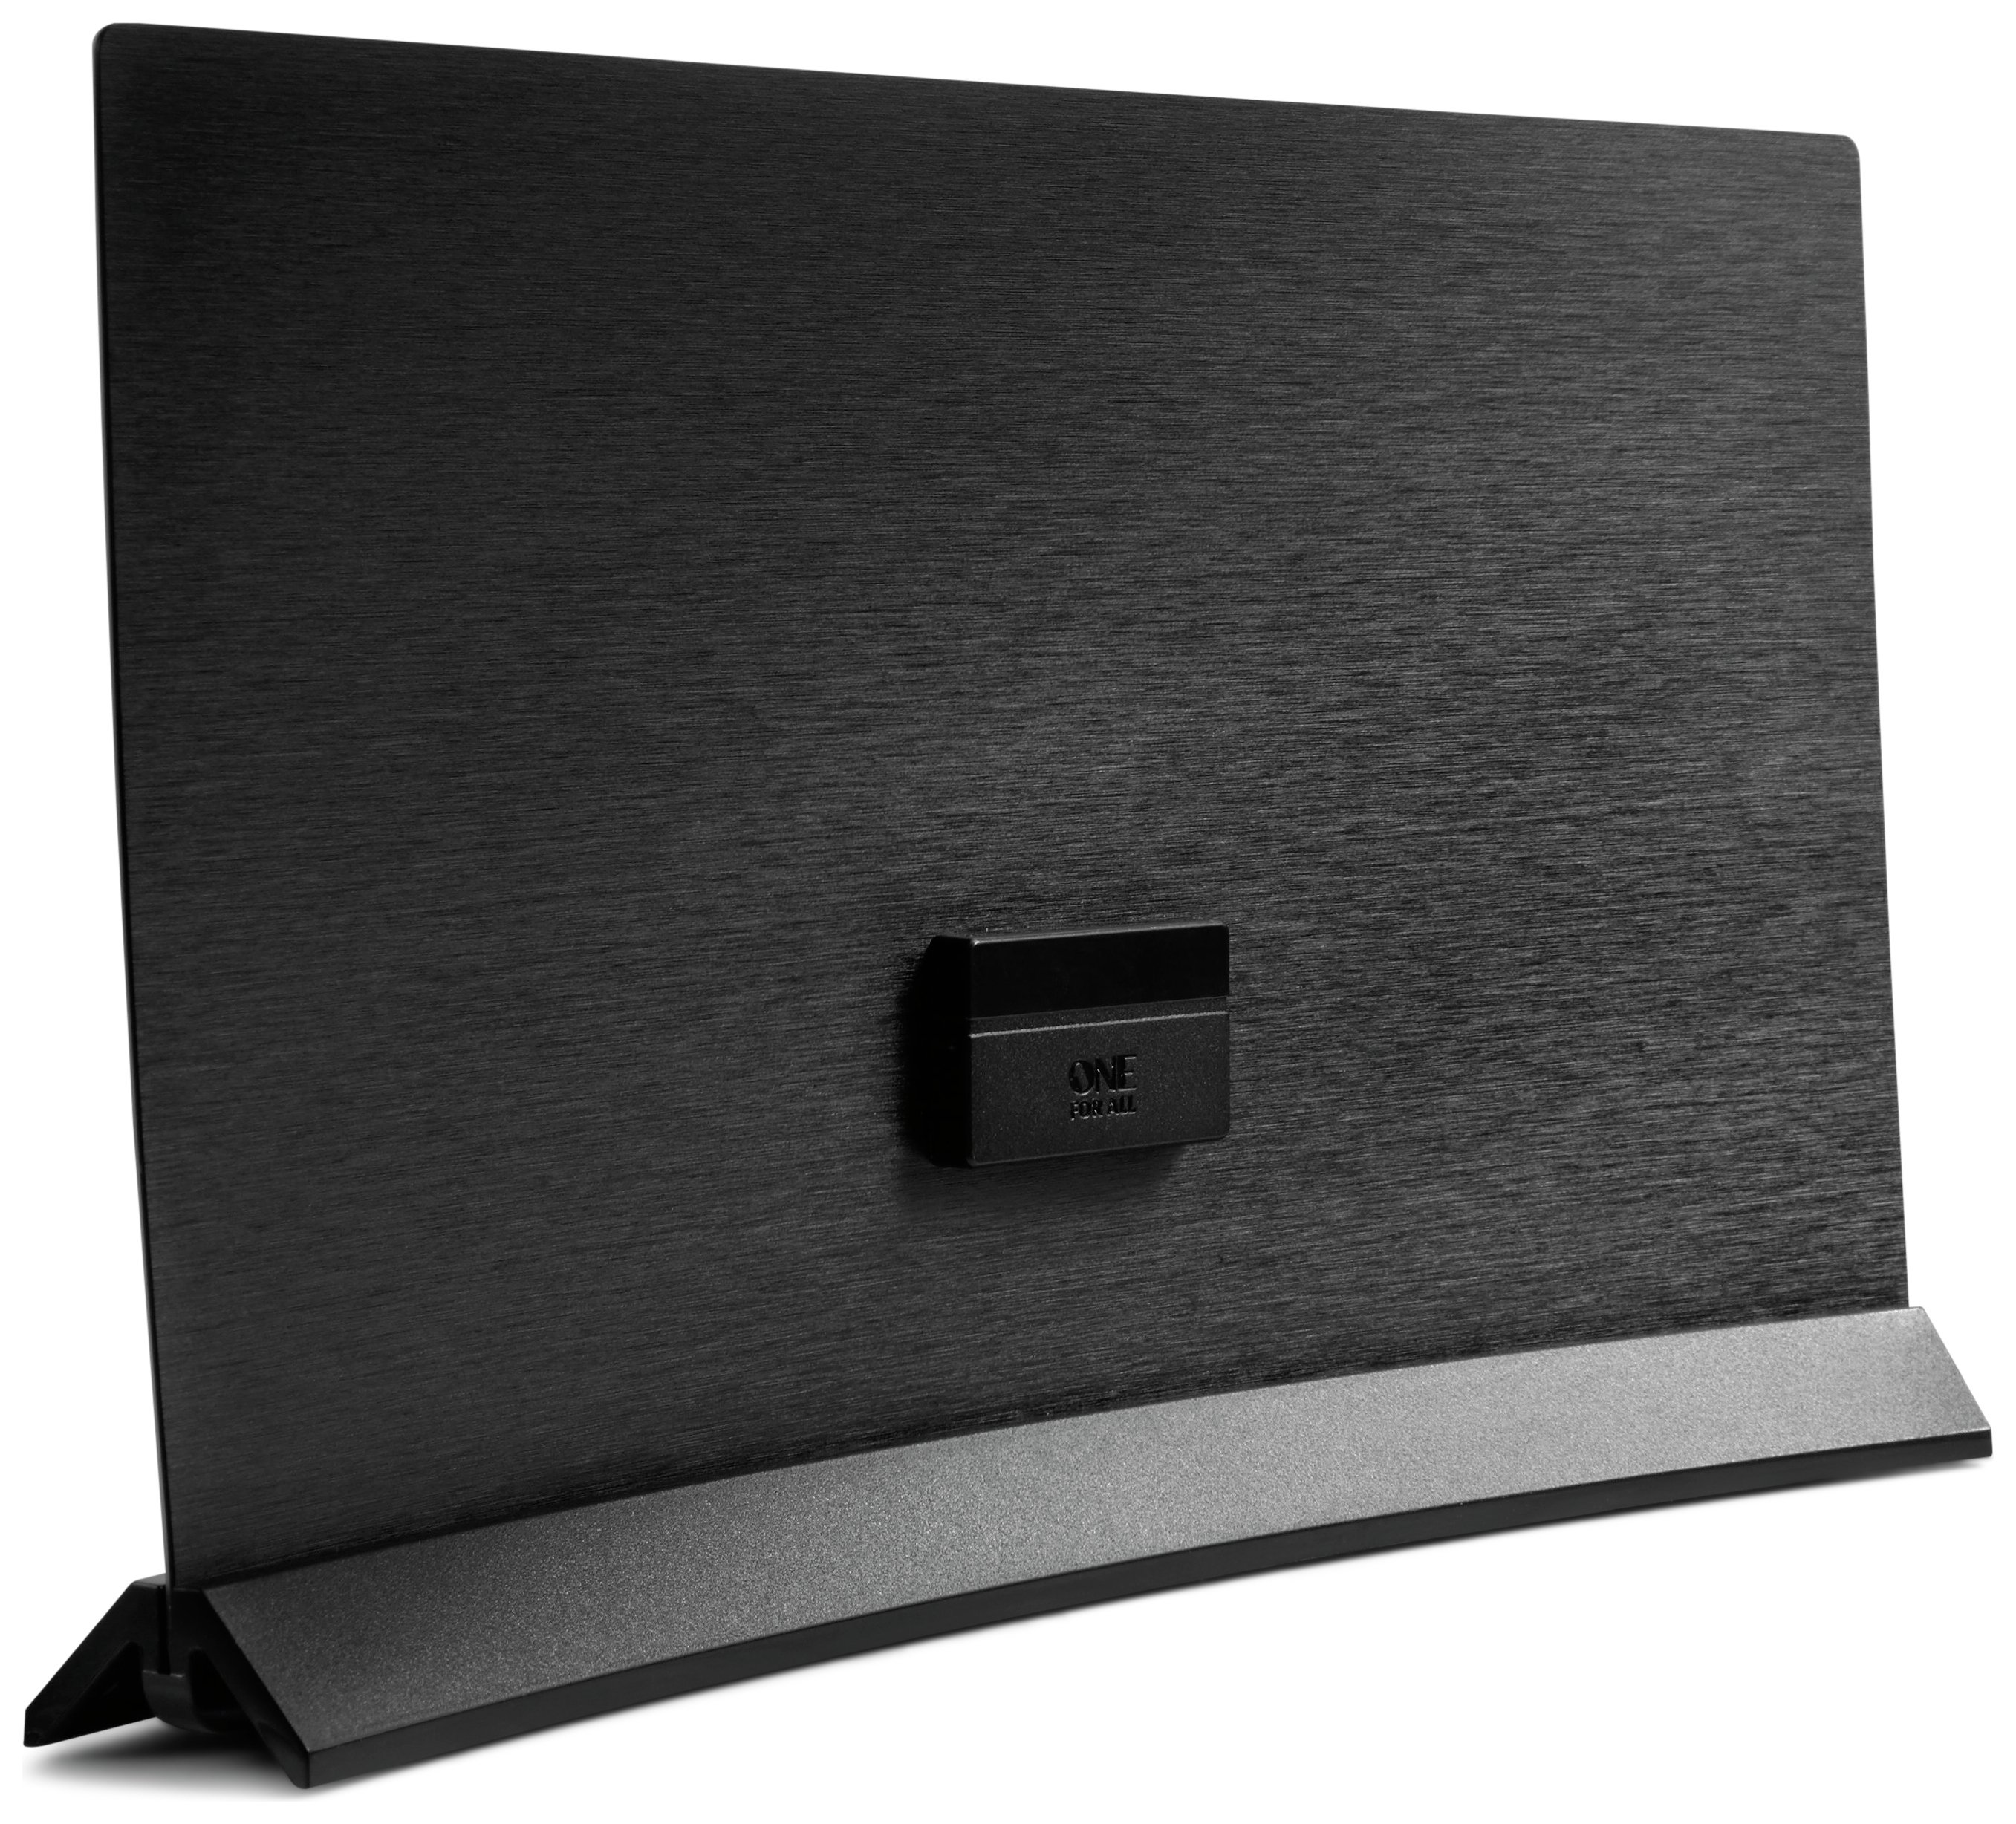 One For All - SV9440 Indoor - TV Aerial